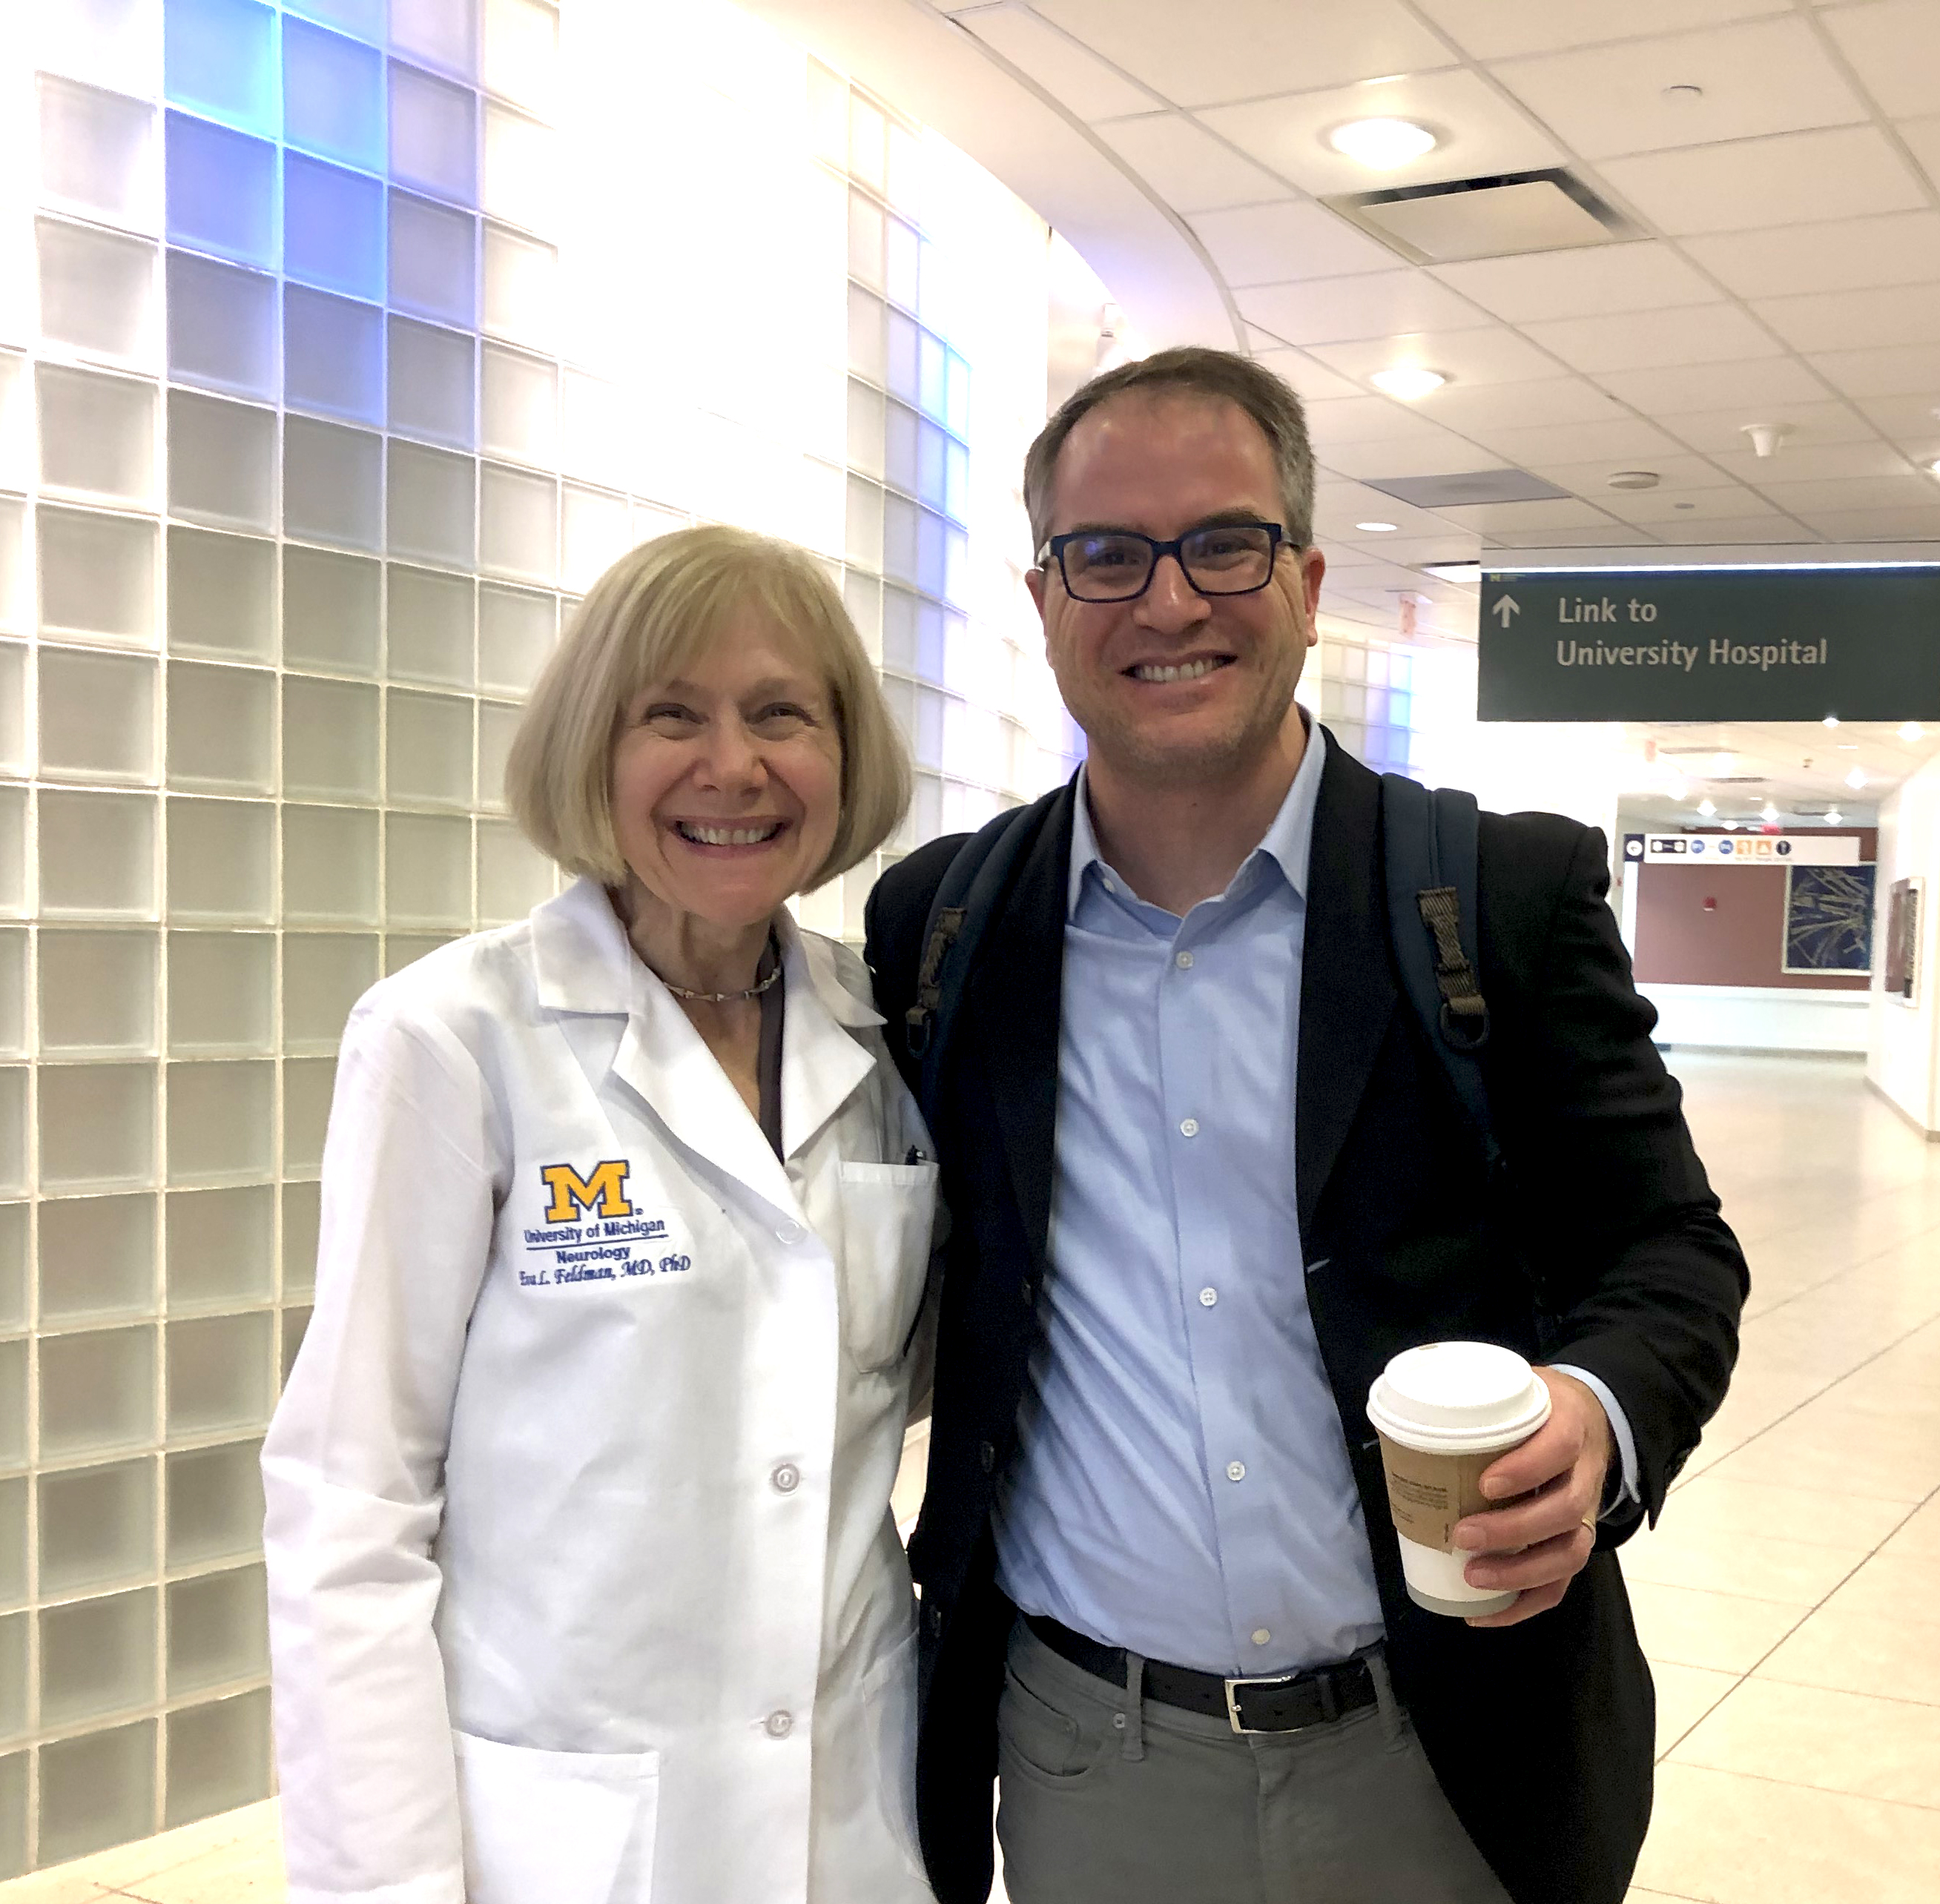 photo of Dr. Eva Feldman of the NeuroNetwork for Emerging Therapies and Dr. James Dowling of the University of Toronto after he gave Neurology Grand Rounds at Michigan Medicine